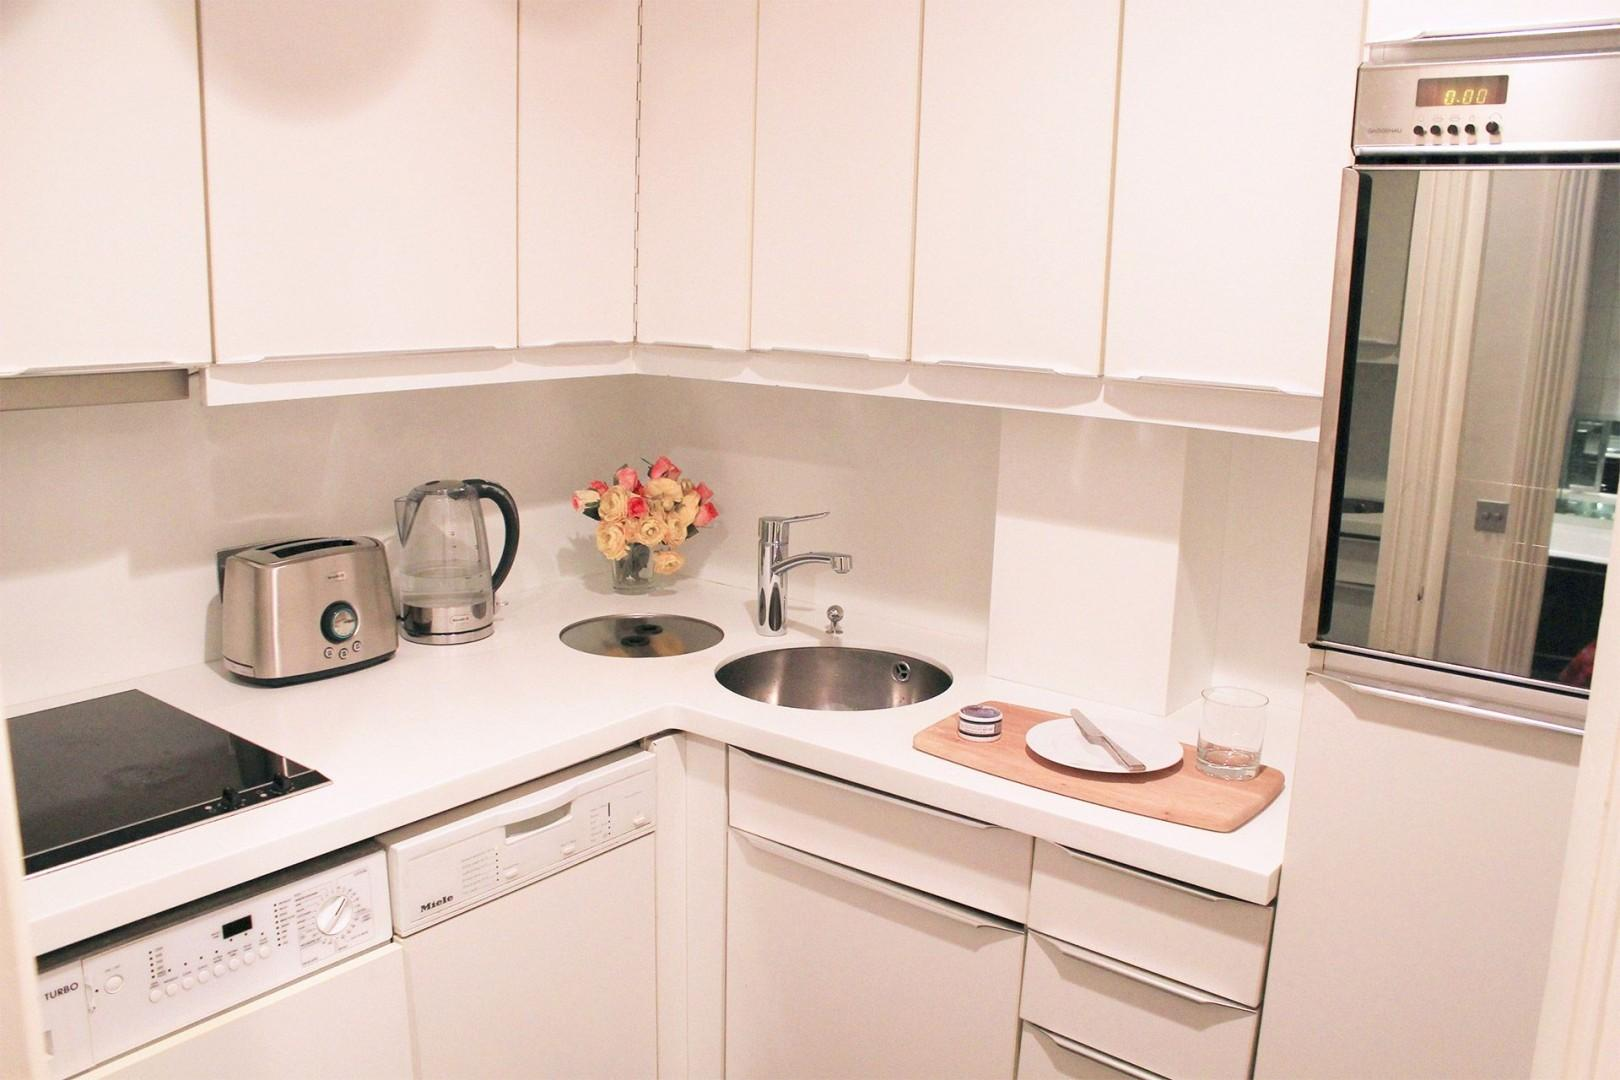 Fully equipped London kitchen for light meals at home